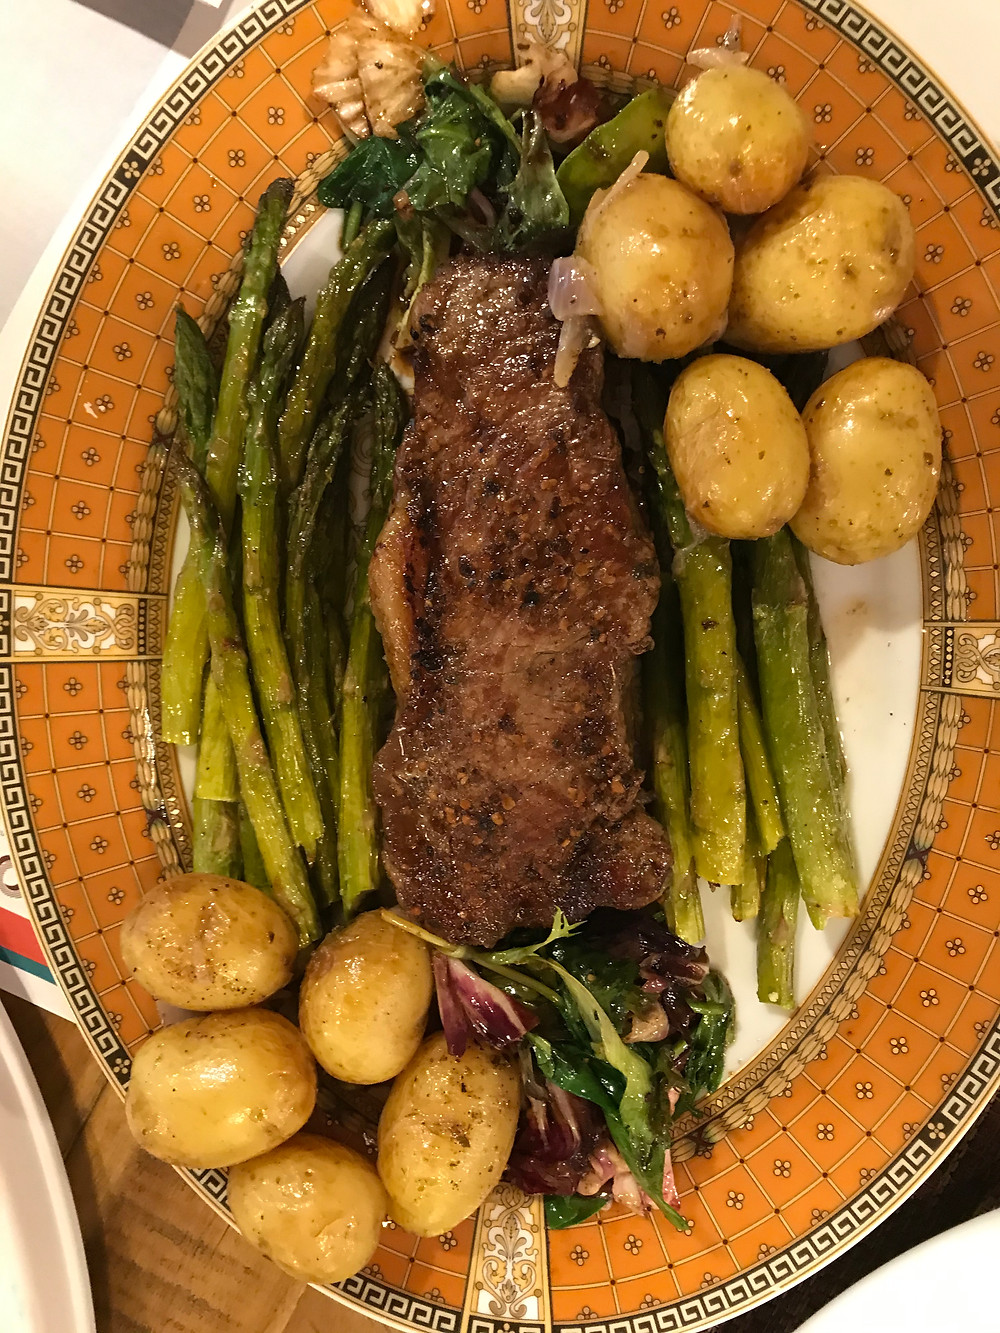 Add some veg. (roasted asparagus and potatoes roasted in the instant pot to speed up the roasting process from 70 mins to 31 seconds). Out of paper plates, so serve from the Bernardaud Limoges.